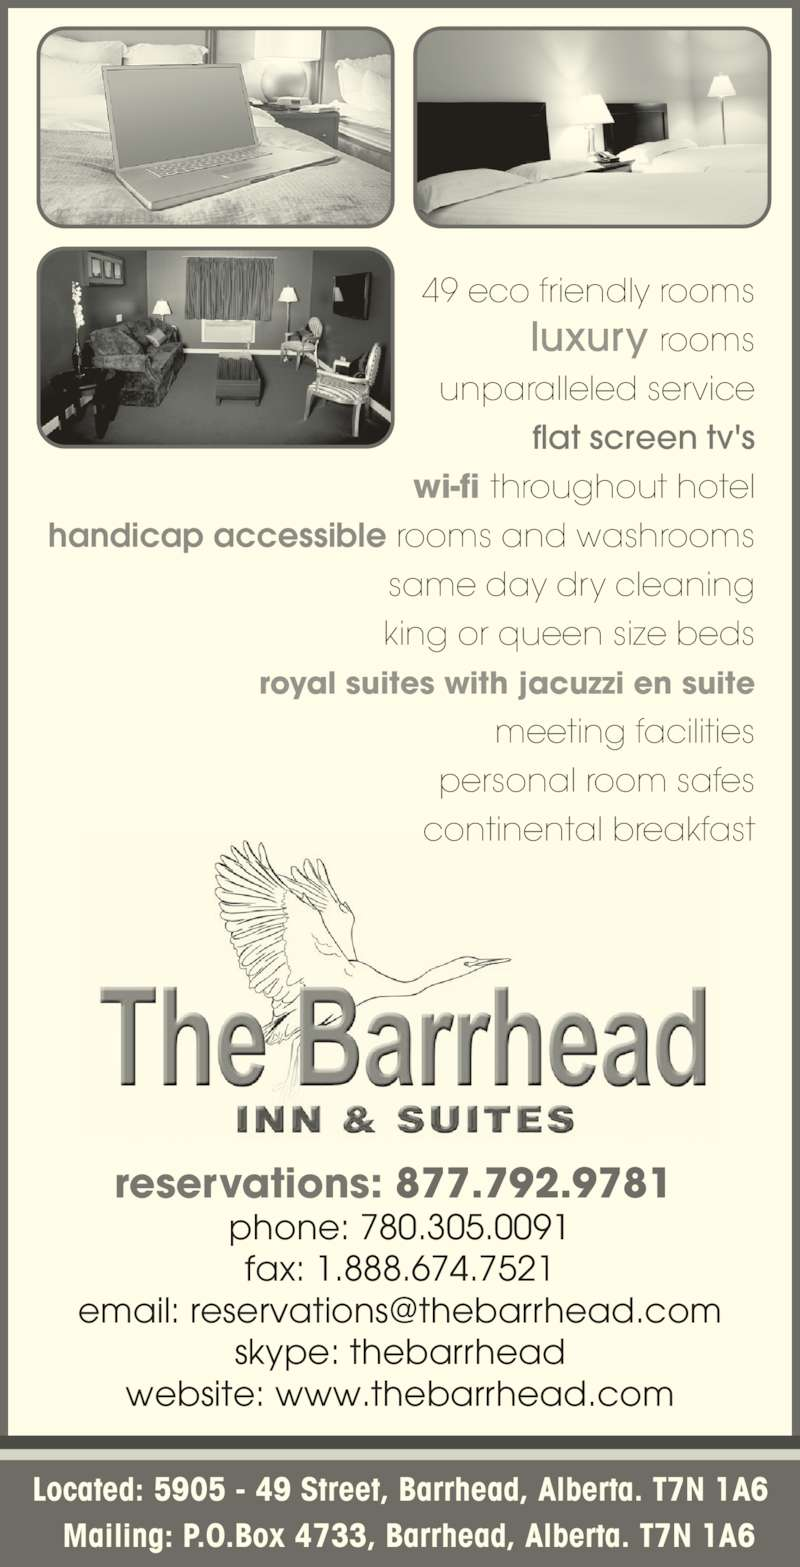 The Barrhead Inn & Suites (780-674-7521) - Display Ad - reservations: 877.674.7521wi-fithroughout hotel  |  handic p accessibleooms nd washrooms Located: 5905 - 49 Street, Barrhead, Alberta. T7N 1A6     Mailing: P.O.Box 4733, Barrhead, Alberta. T7N 1A6 reservations: 877.792.9781  phone: 780.305.0091 fax: 1.888.674.7521 skype: thebarrhead website: www.thebarrhead.com 49 eco friendly rooms luxury rooms unparalleled service flat screen tv's wi-fi throughout hotel handicap accessible rooms and washrooms same day dry cleaning king or queen size beds royal suites with jacuzzi en suite meeting facilities personal room safes continental breakfast